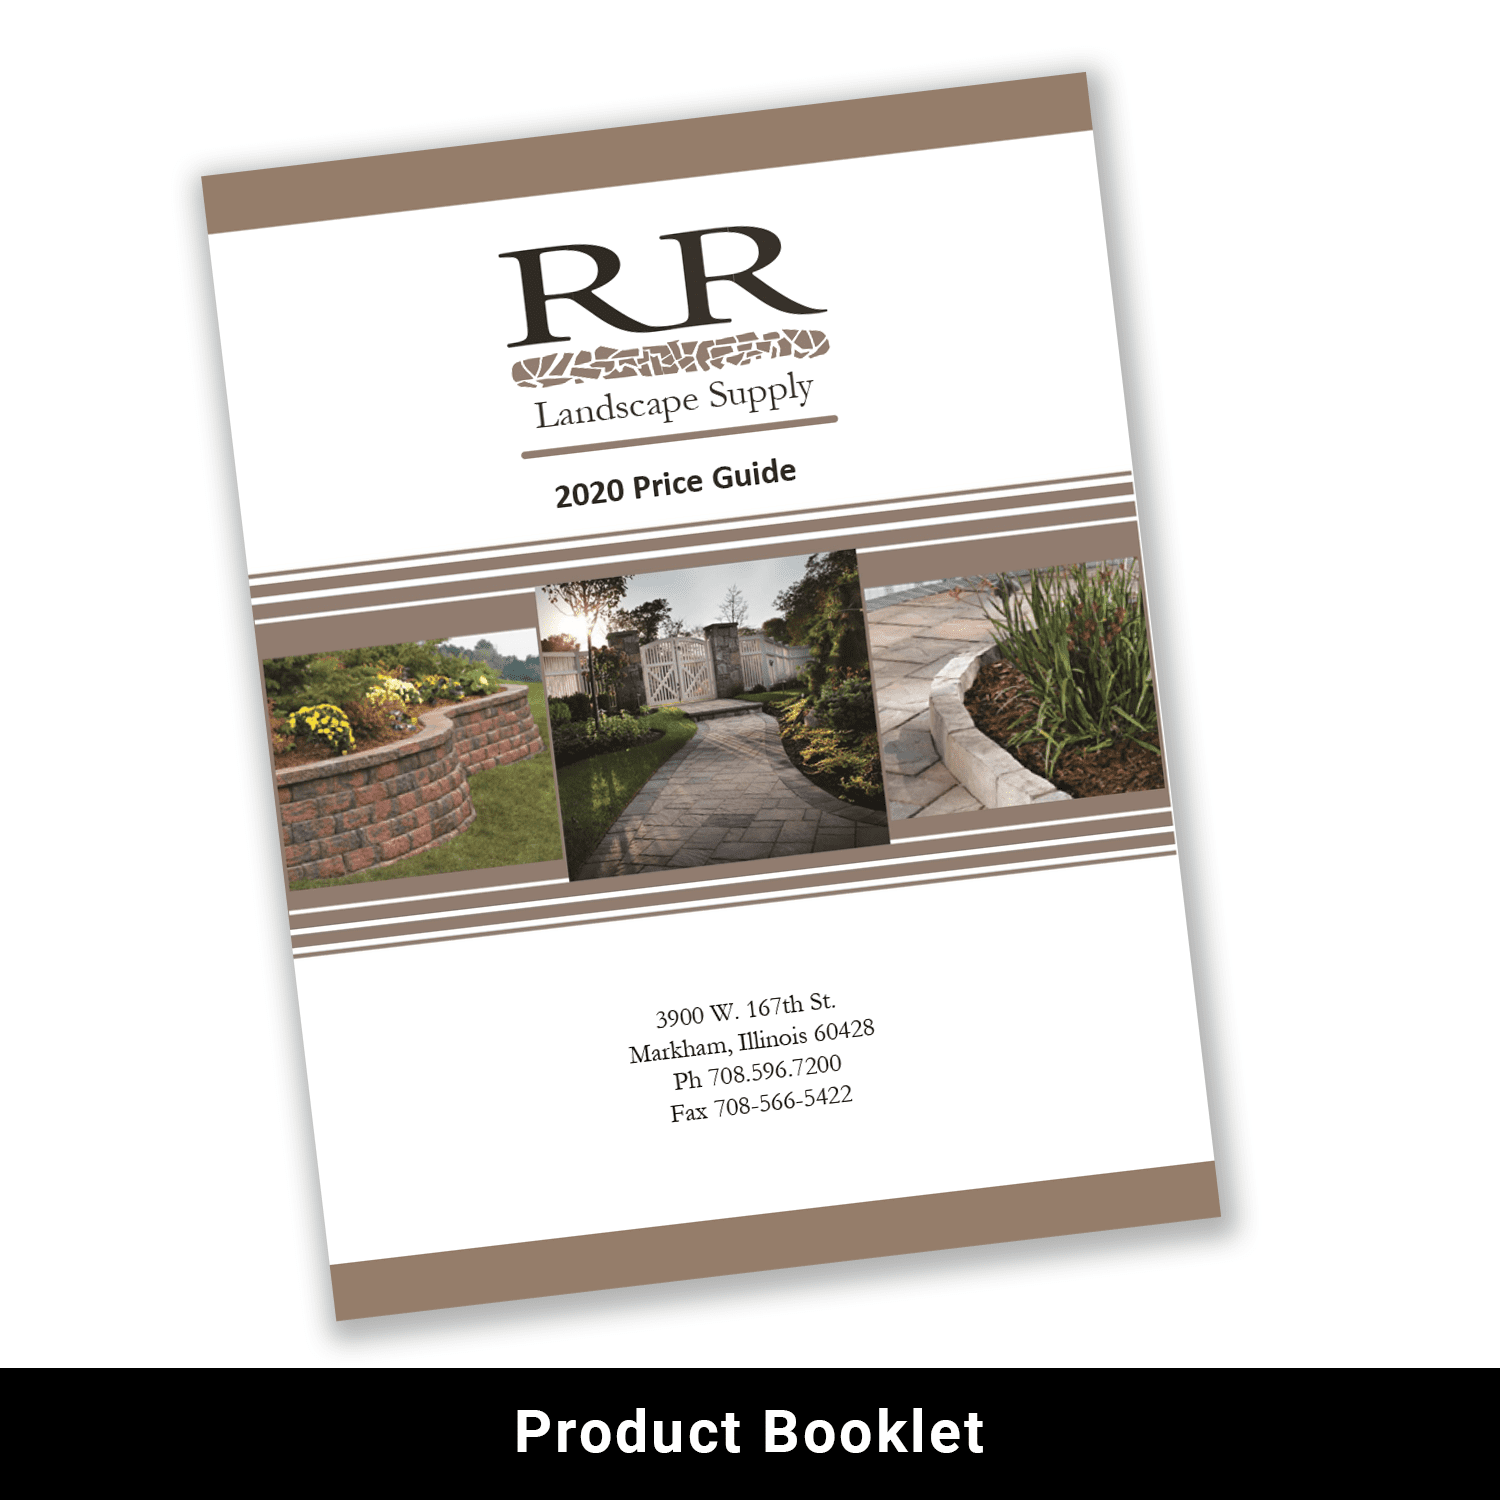 Print product booklet example